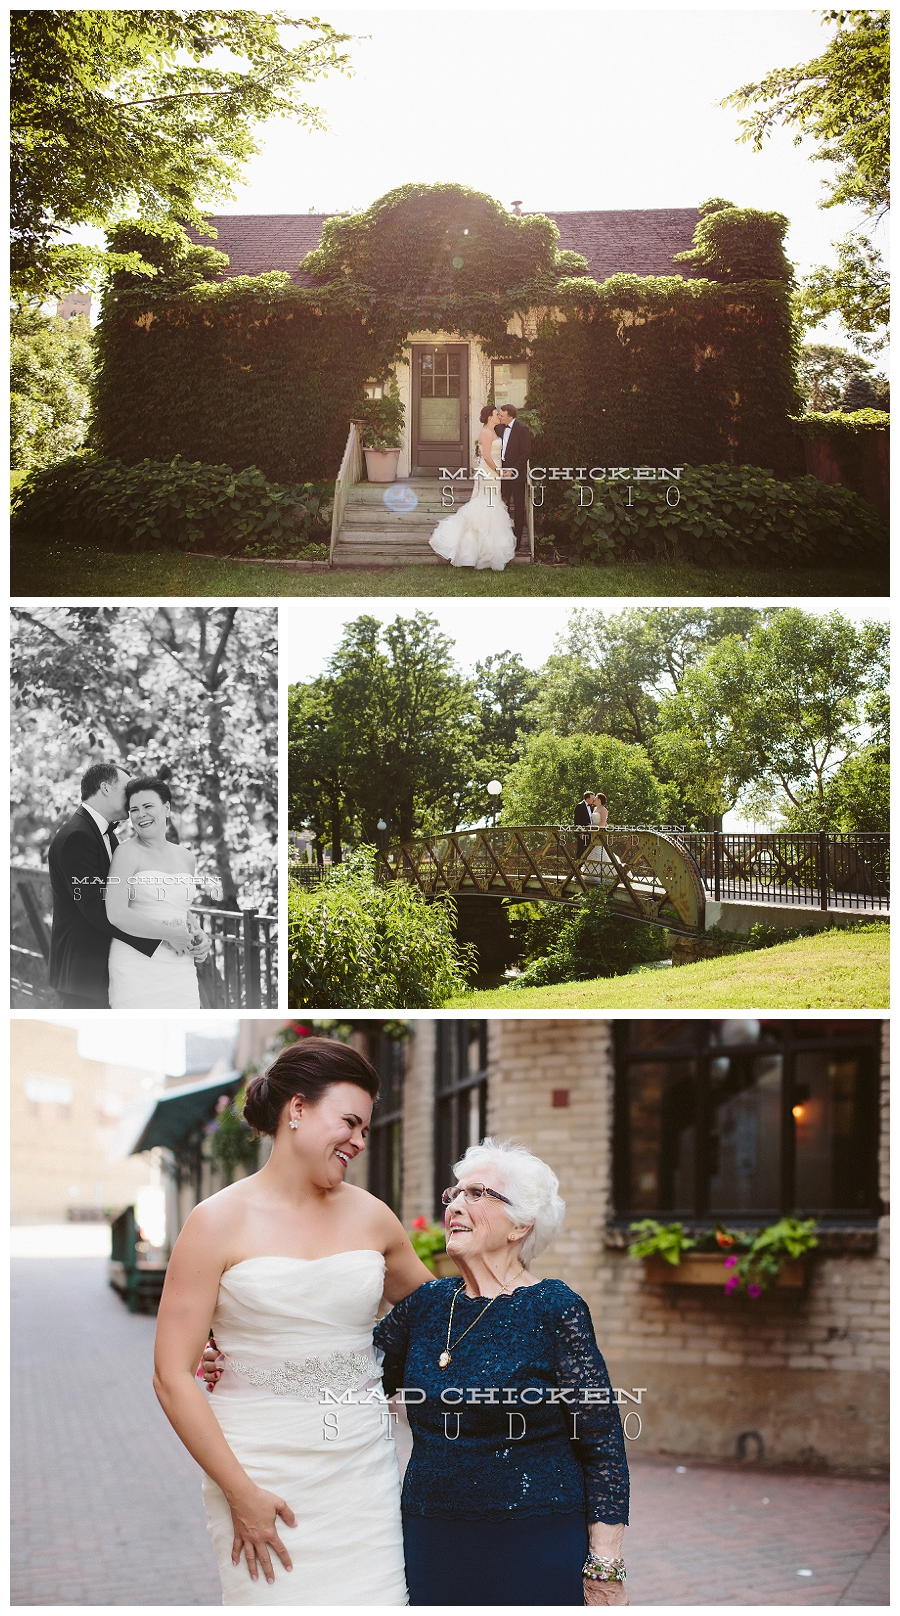 duluth wedding photographer | minneapolis, mn | jes hayes with mad chicken studio | sculpture garden | loring park | vera wang wedding gown | cafe lurcat